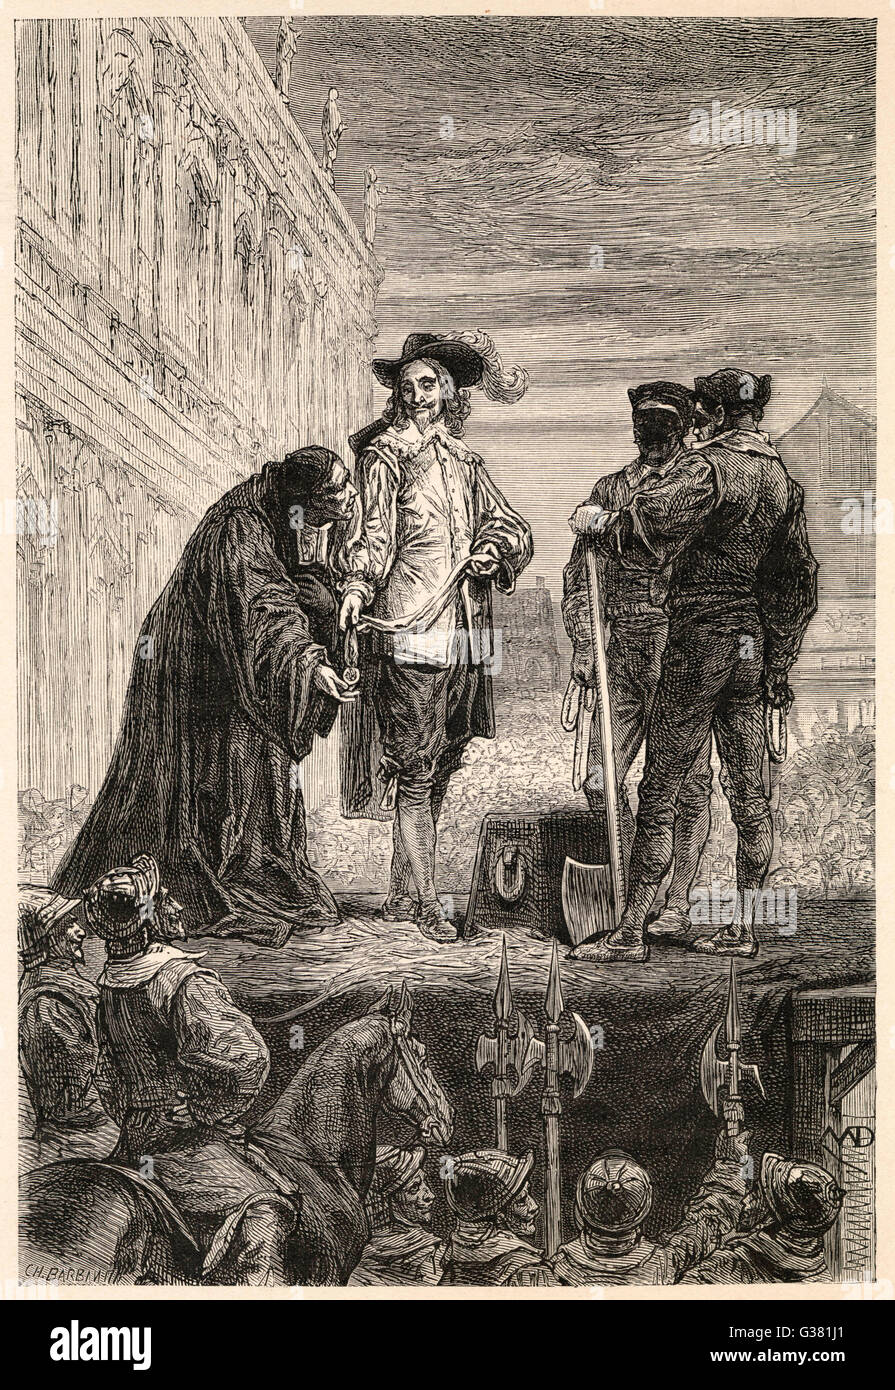 Charles I on the scaffold at  Whitehall prepares to be  beheaded        Date: 30 January 1649 - Stock Image